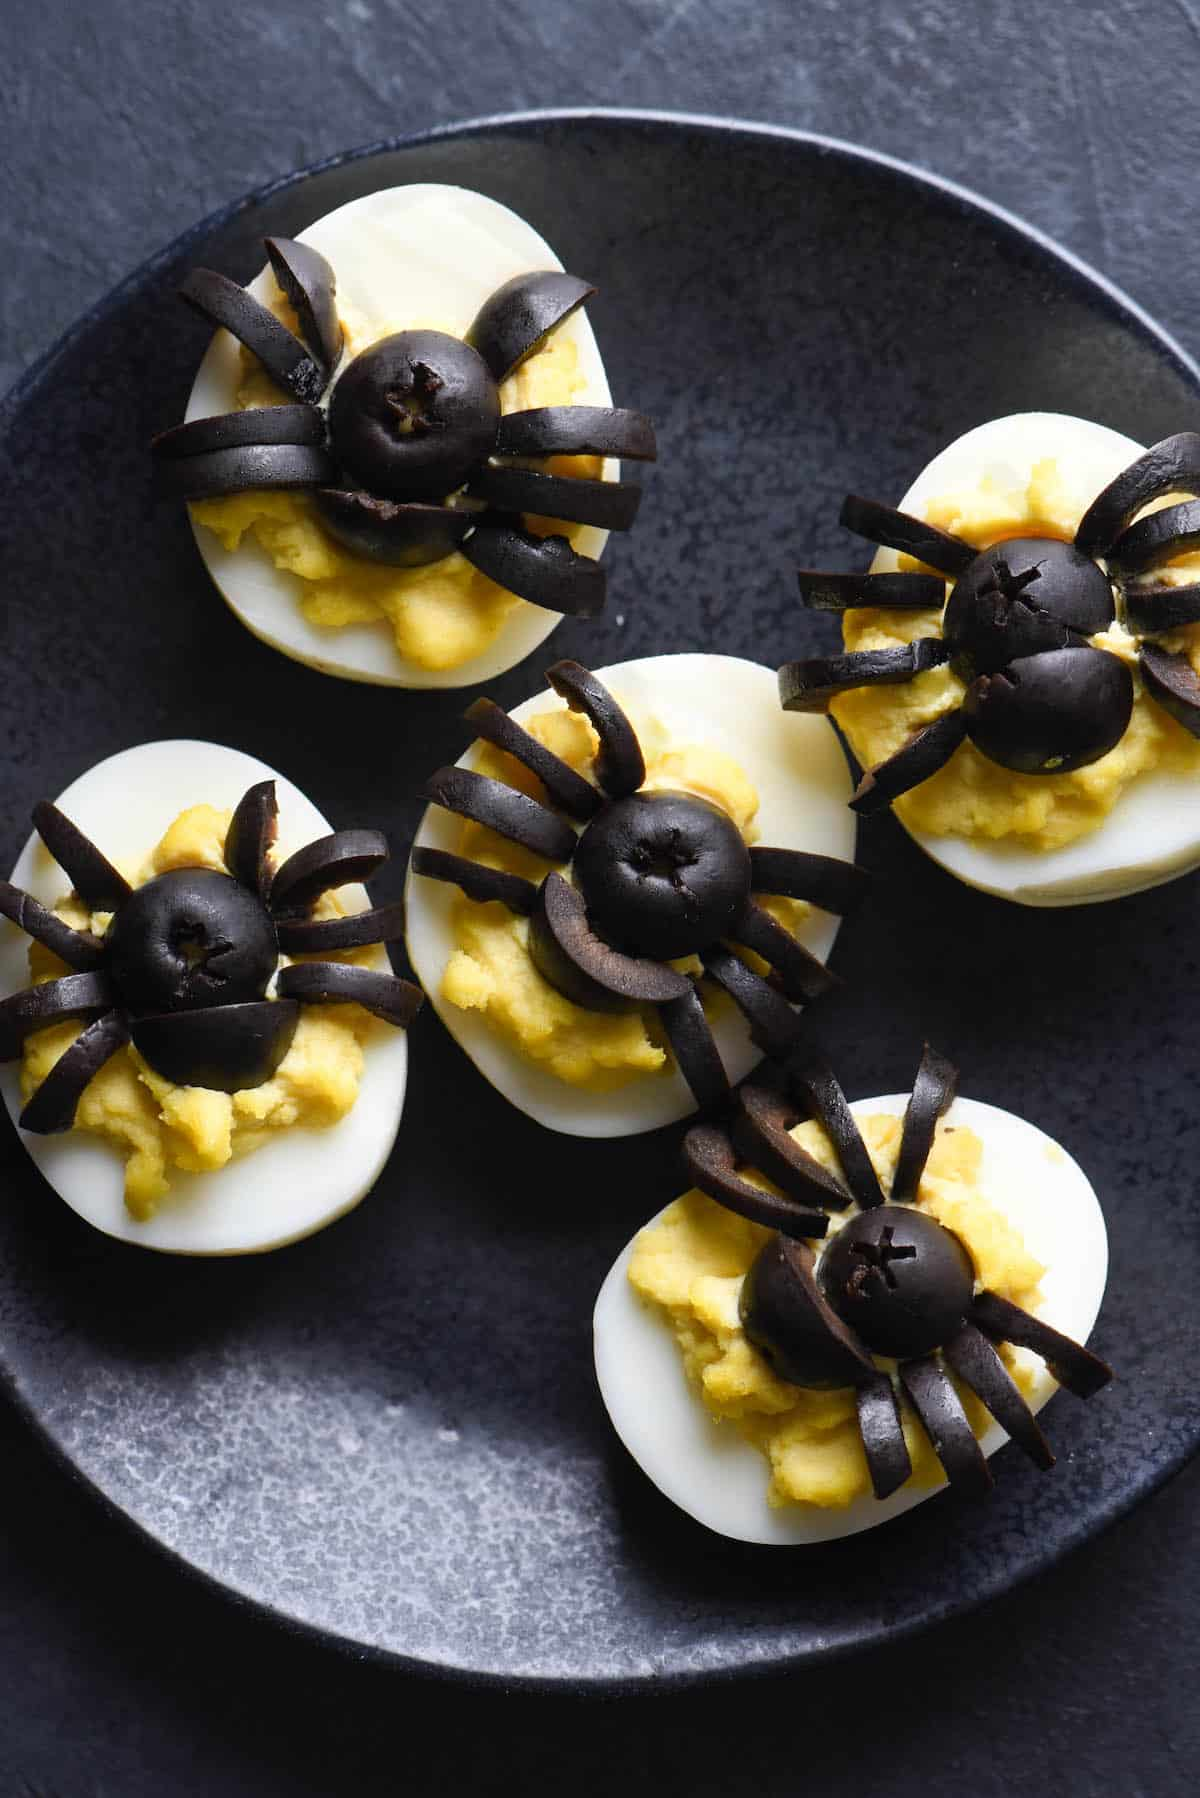 Black plate with deviled eggs on top. Black olives cut into the shape of spiders decorate the tops of the eggs.